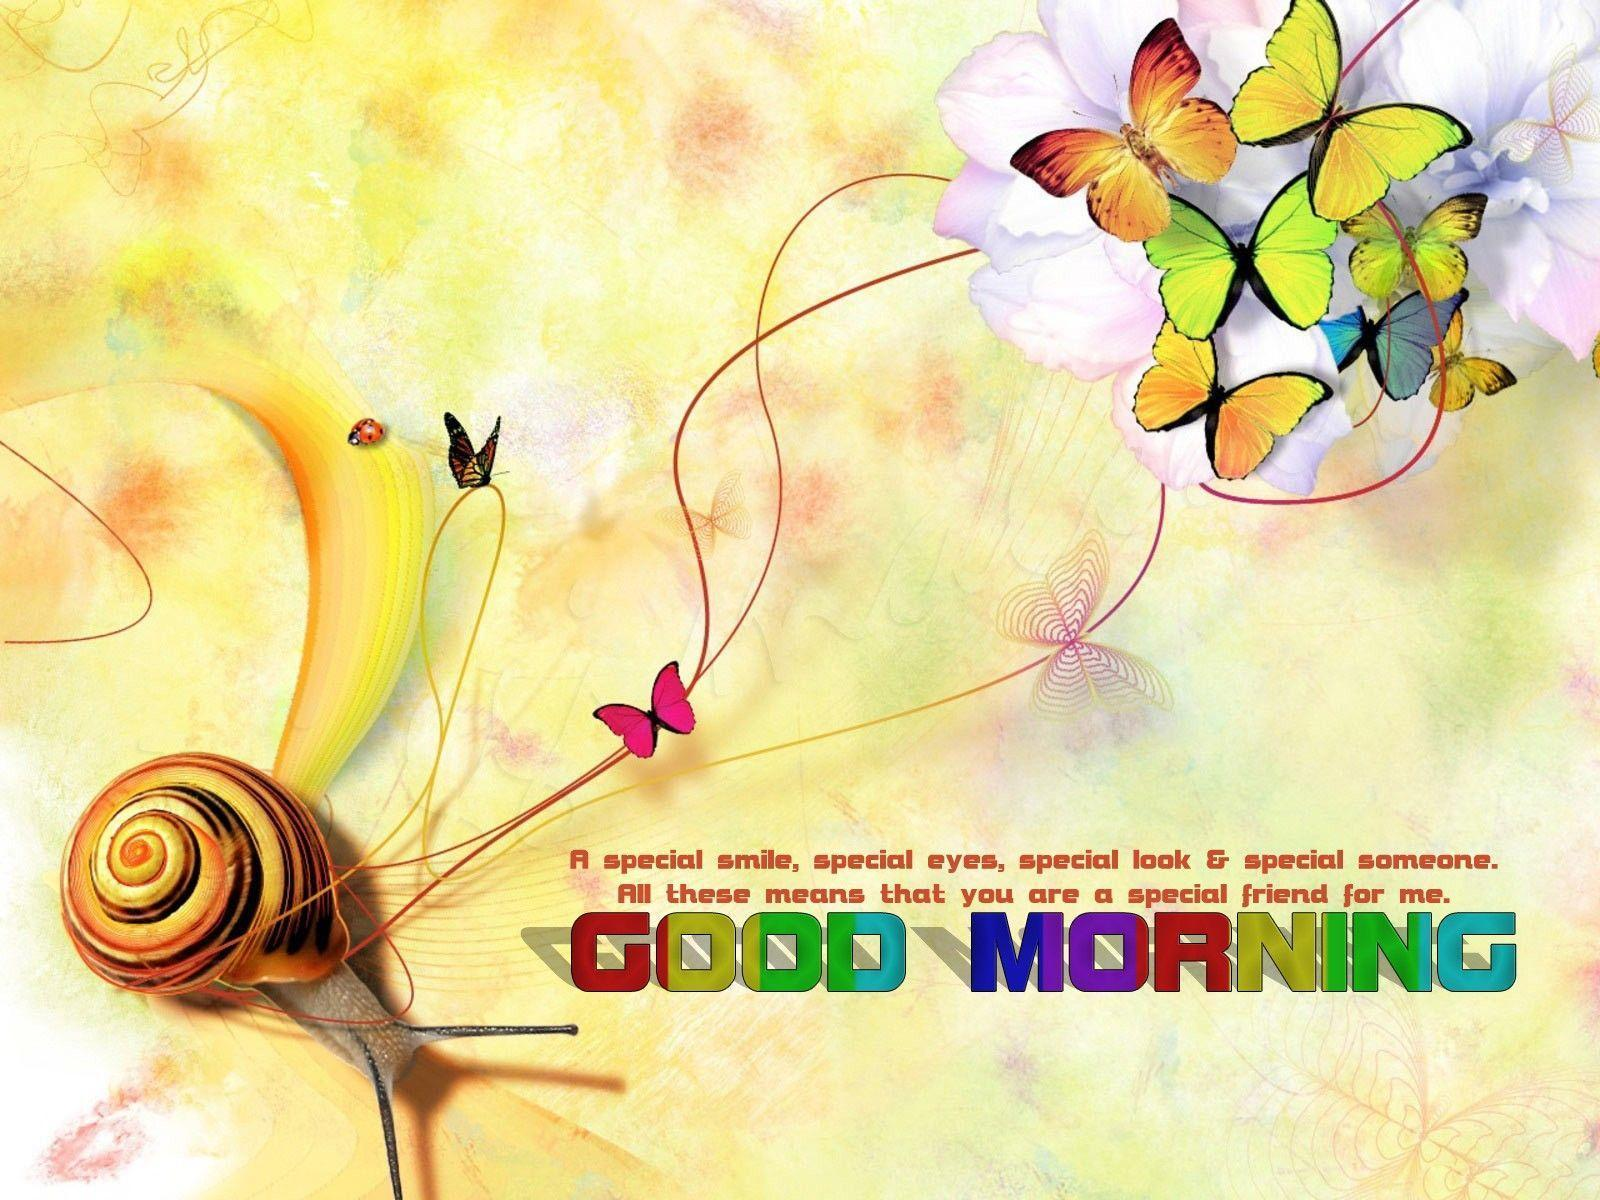 good morning wishes wallpapers wallpaper cave